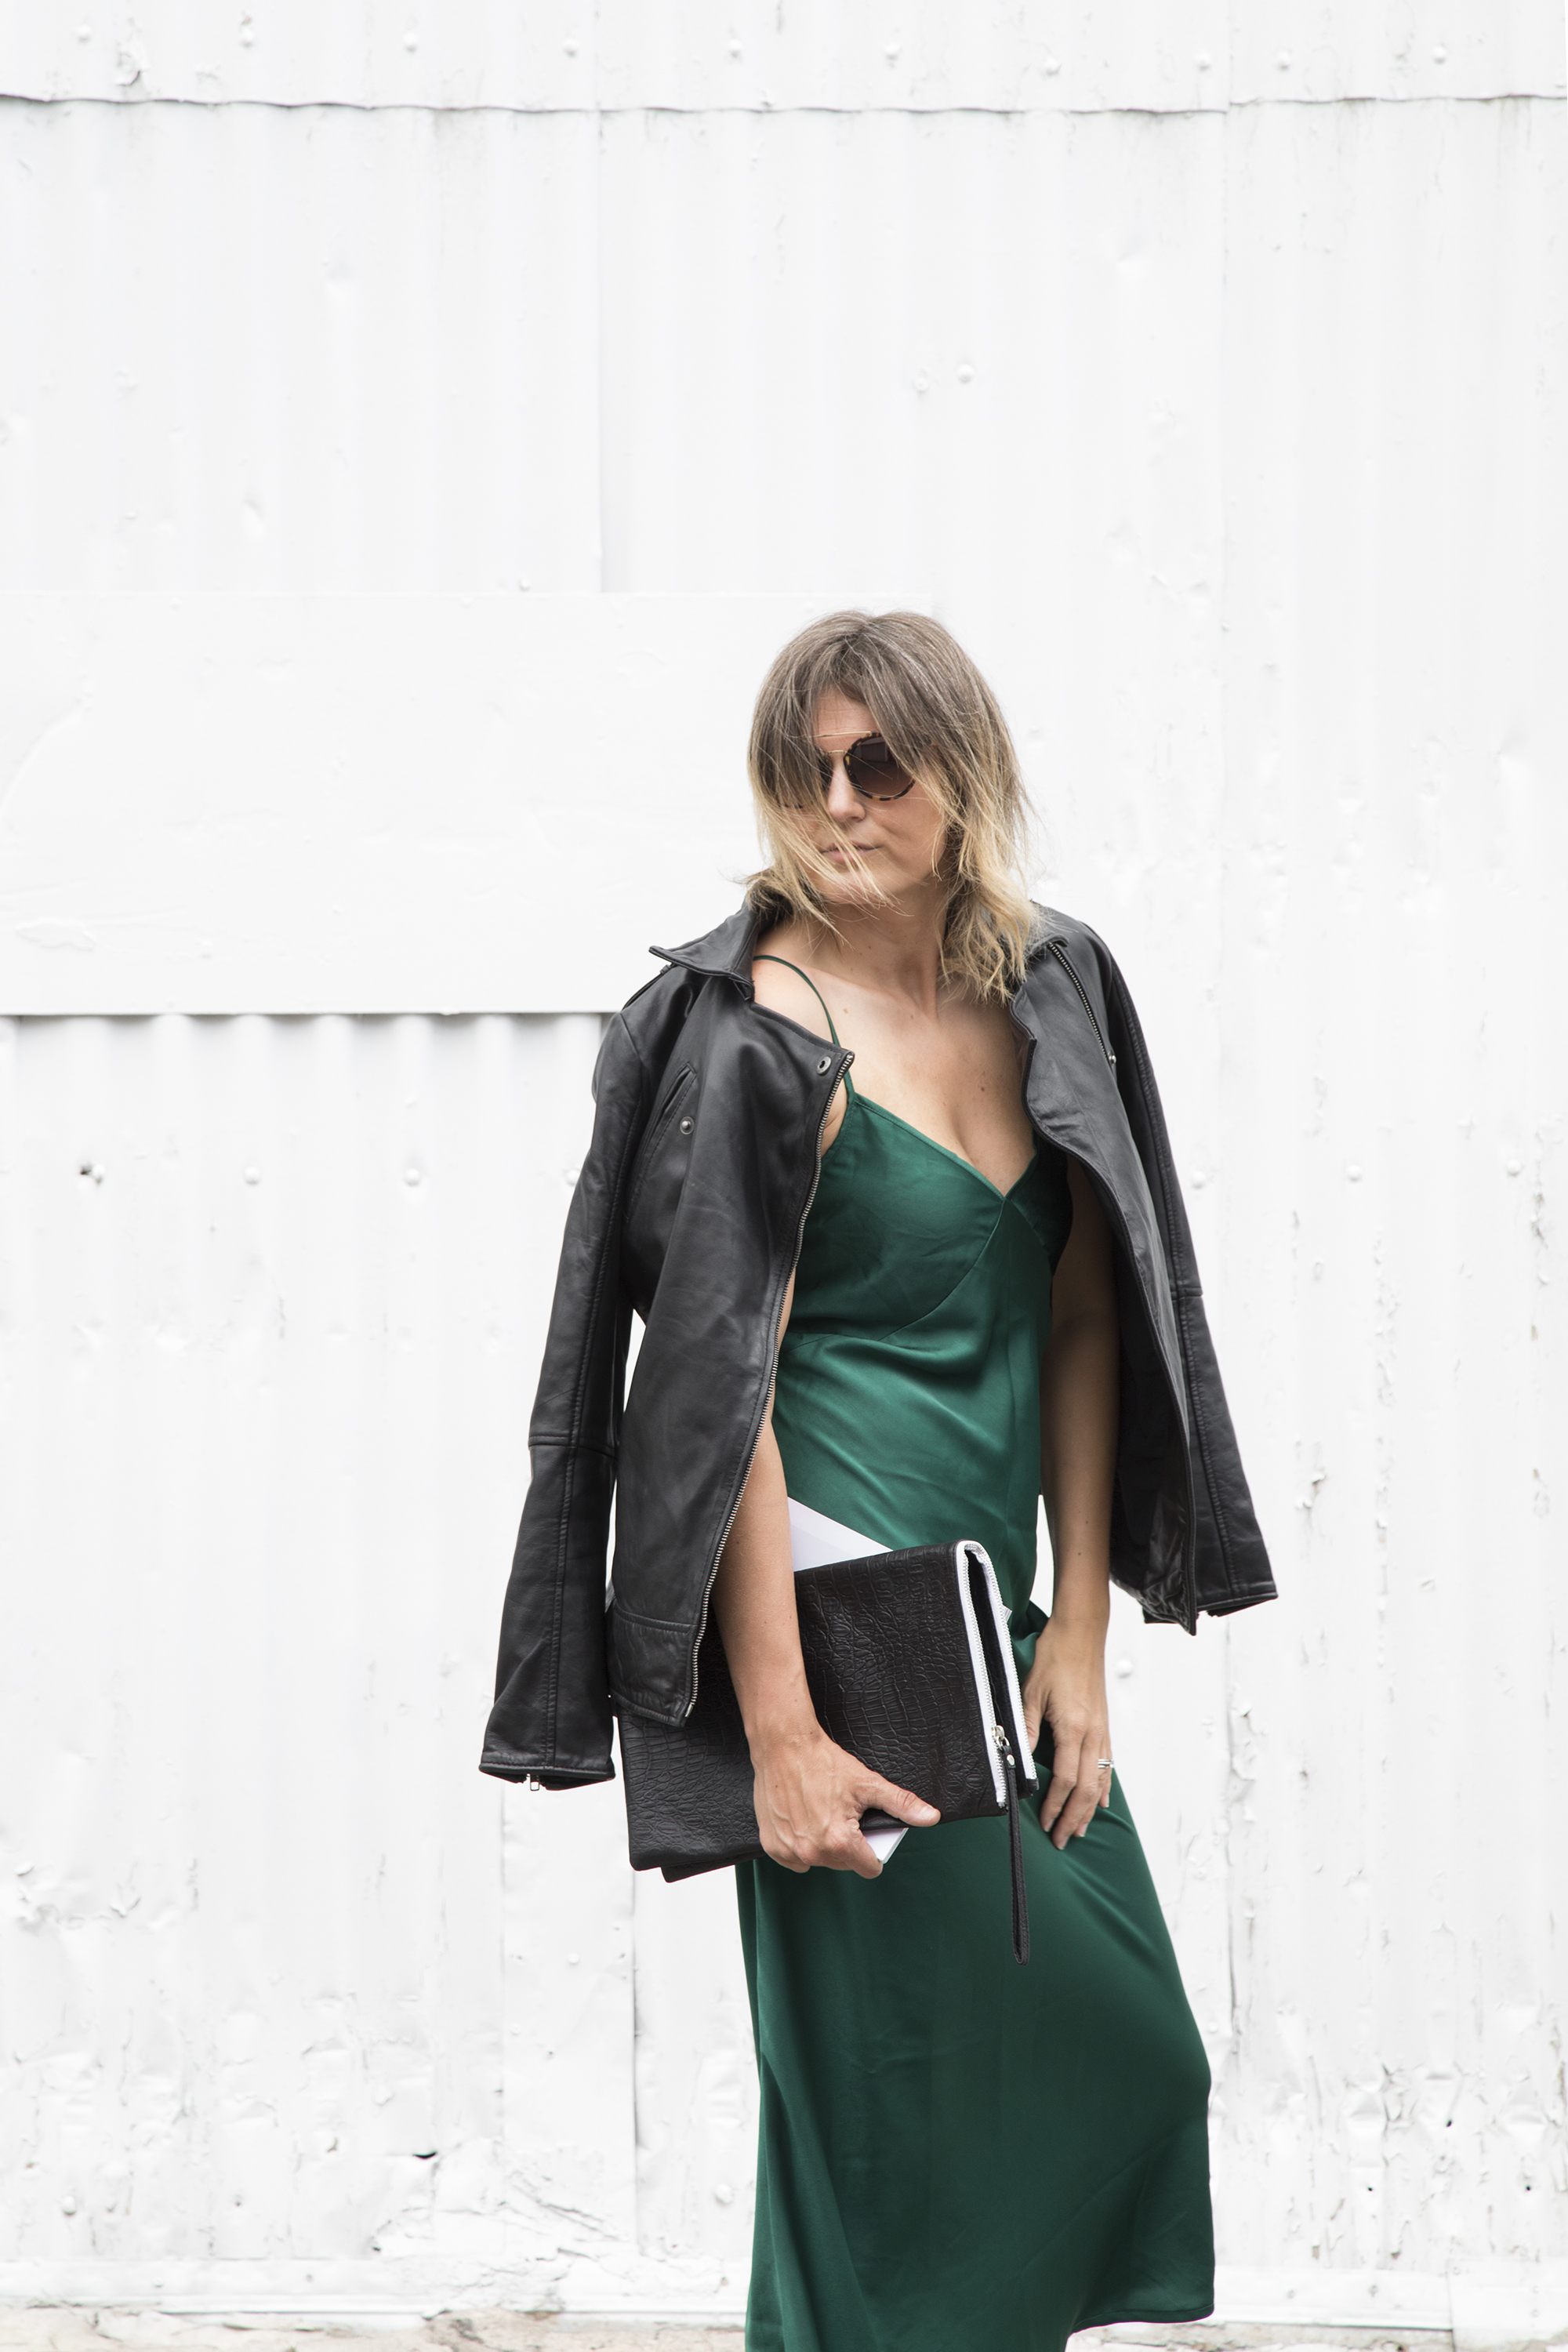 Sneakers_and_Soul_Green_Dress_02.jpg